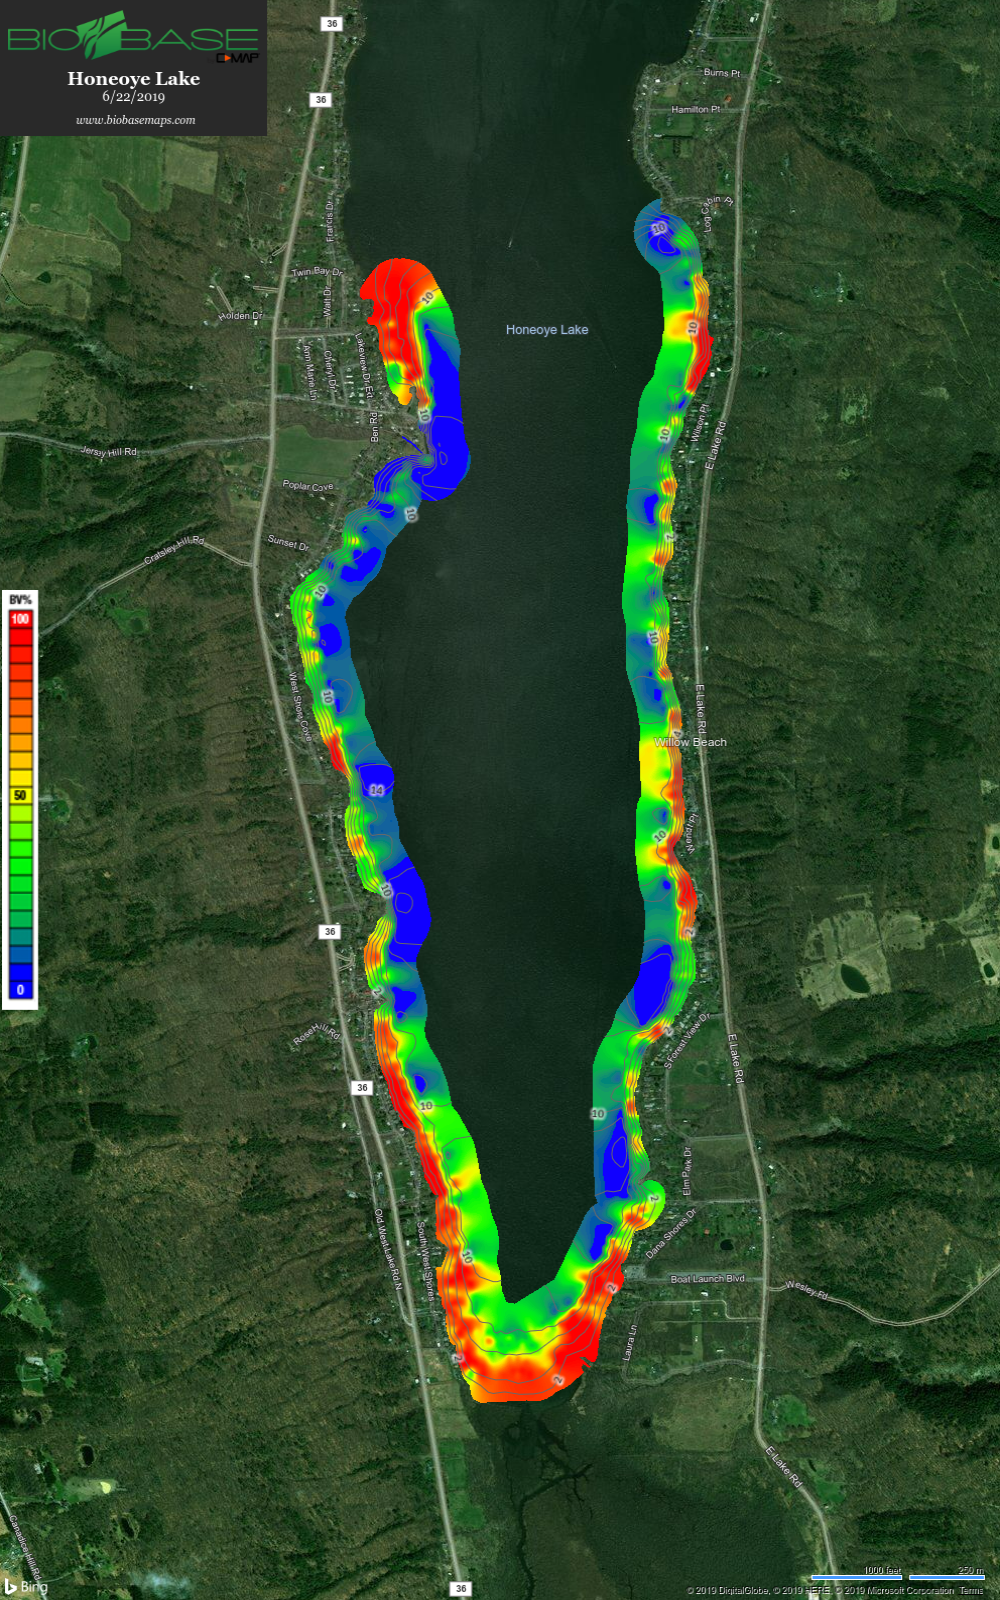 Honeoye Lake Southern Lake Basin Macrophyte Map 062119